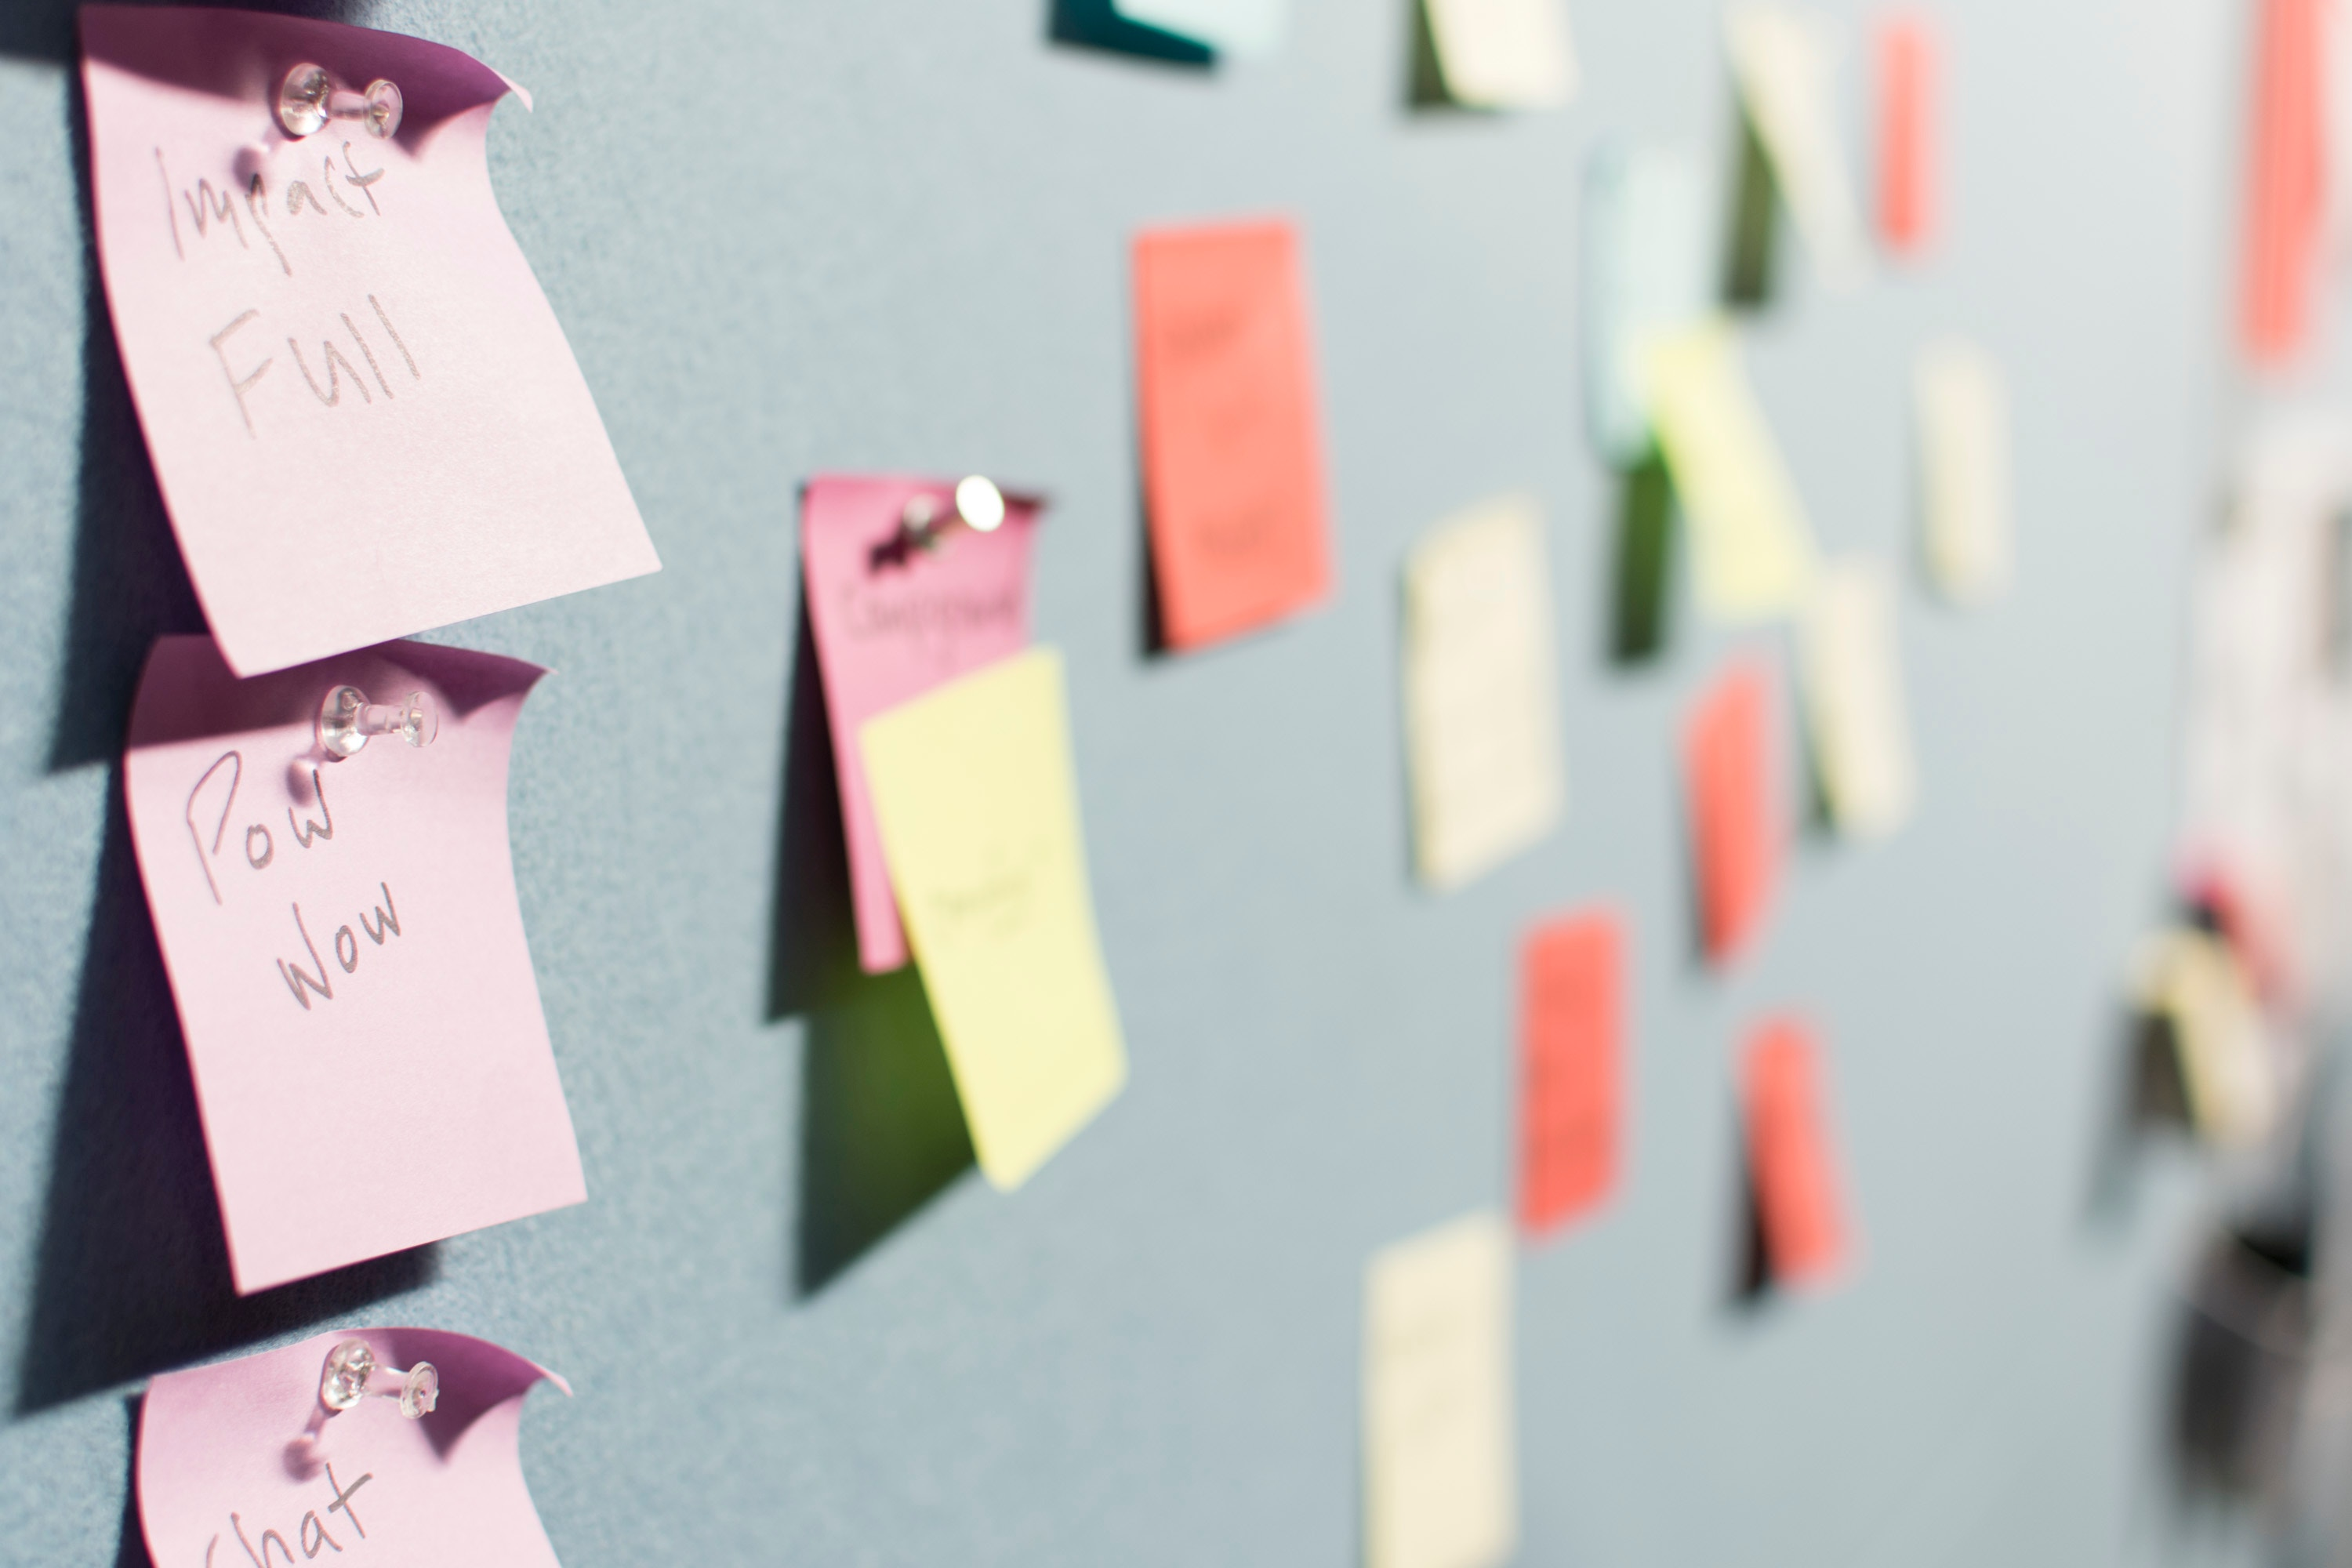 brainstorming is a great way to get the creative juices flowing